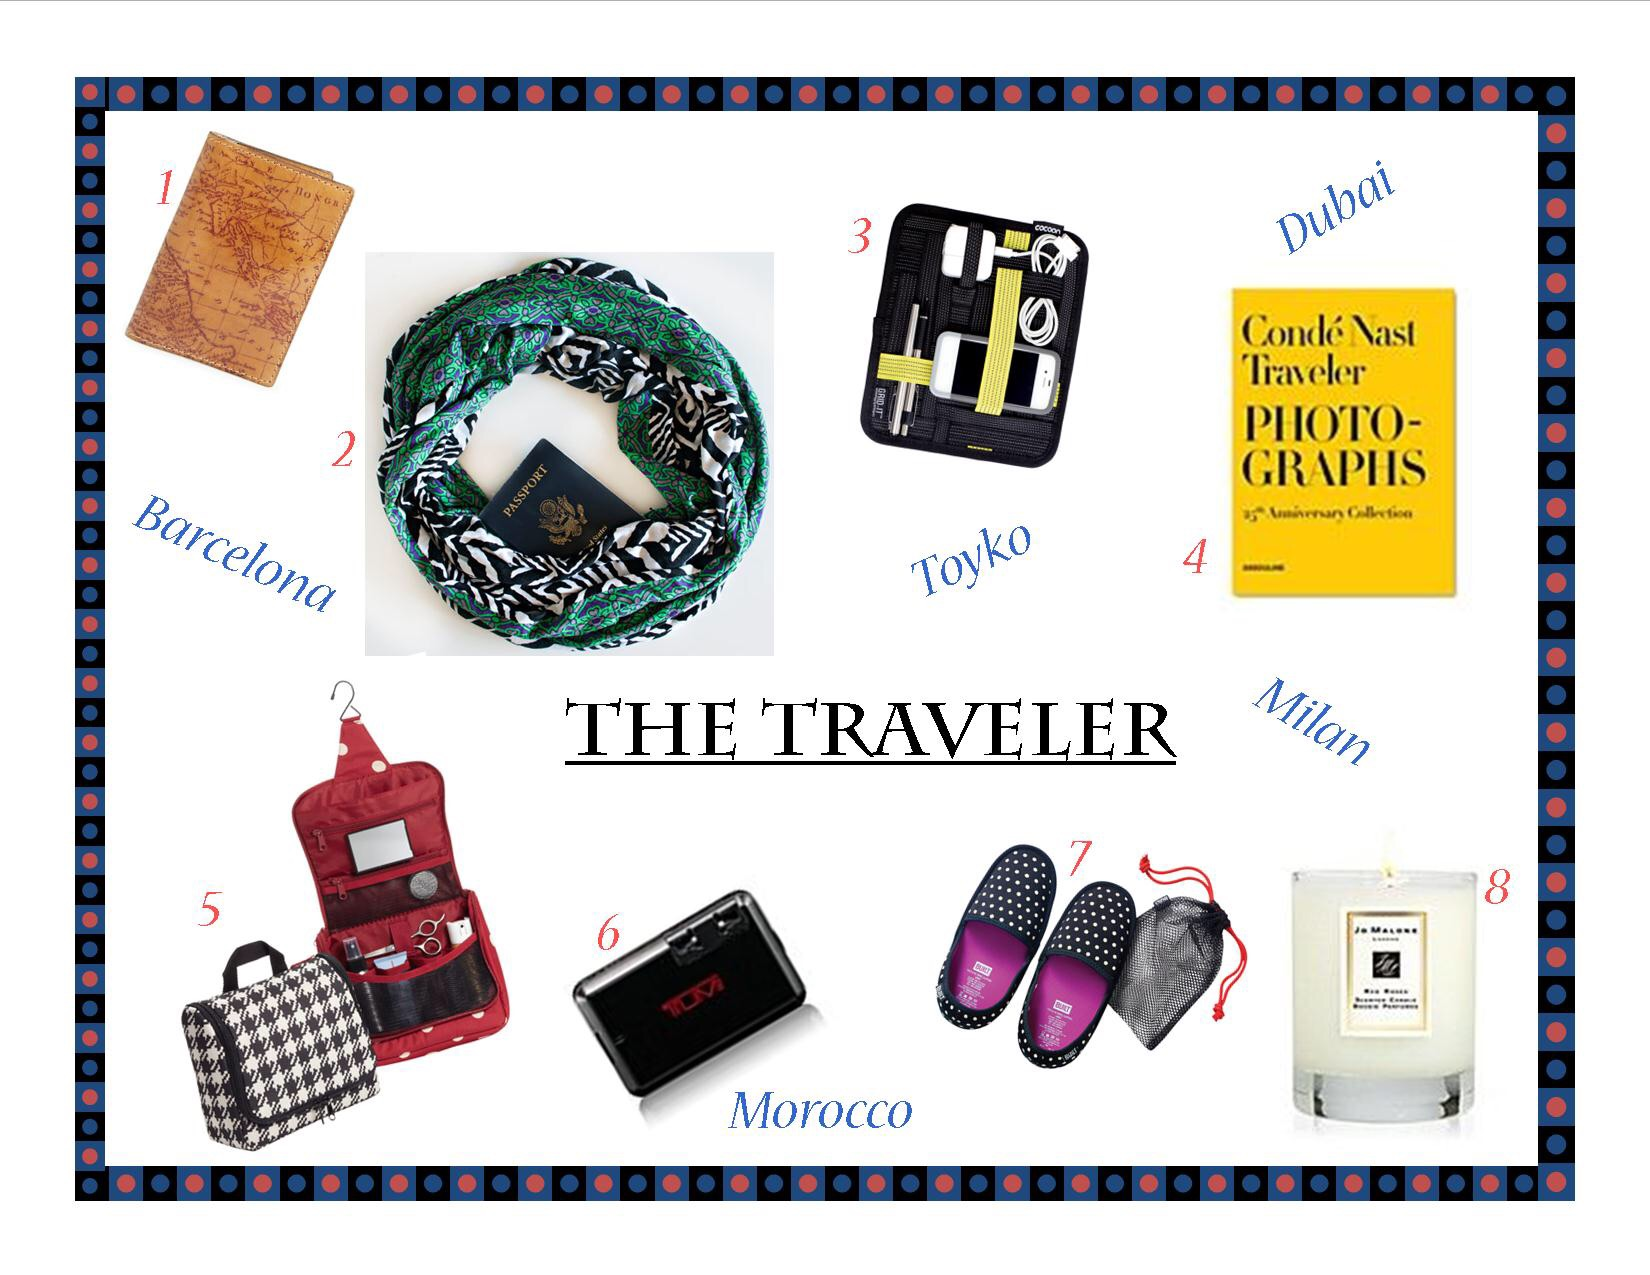 1) Patricia Nash Map Print Leather Passport Holder   2) East Bay Scarf W/ Hidden Pocket   3) Travel GRID-IT!™ Organizer   4) ASSOULINE Condé Nast Traveler Photographs: 25th Anniversary Collection   5) Hanging Toiletry Organizer by reisenthel   6) Tumi USB Travel Adapter   7) Fold & Go Travel Slippers   8) Red Roses Travel Candle